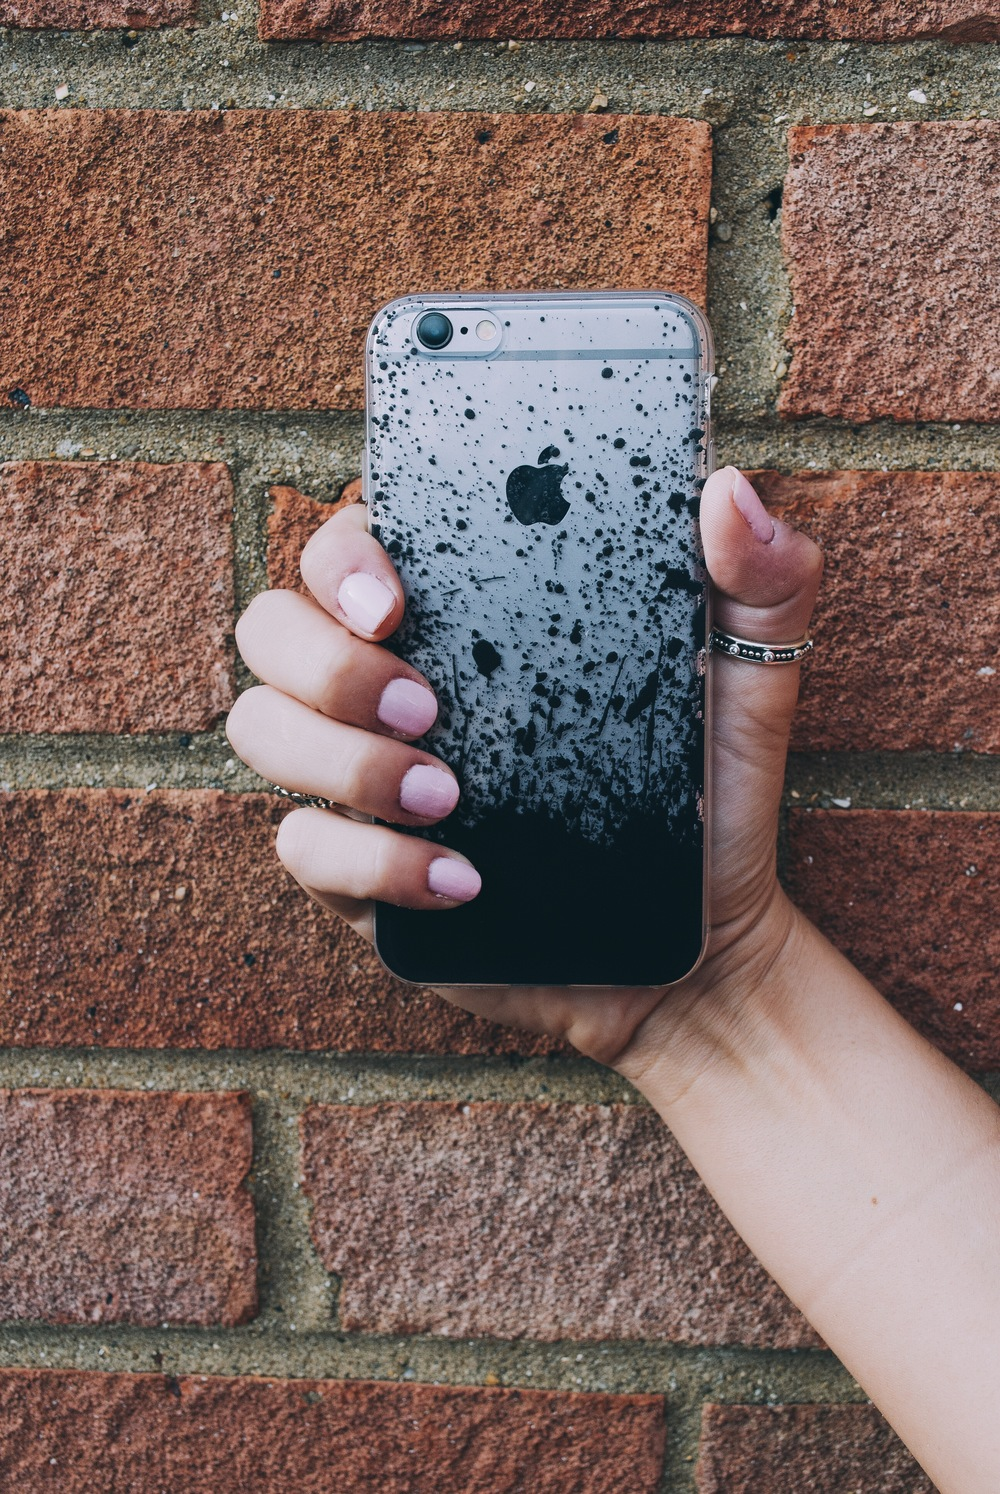 Inkase black paint splat iPhone case against brick wall